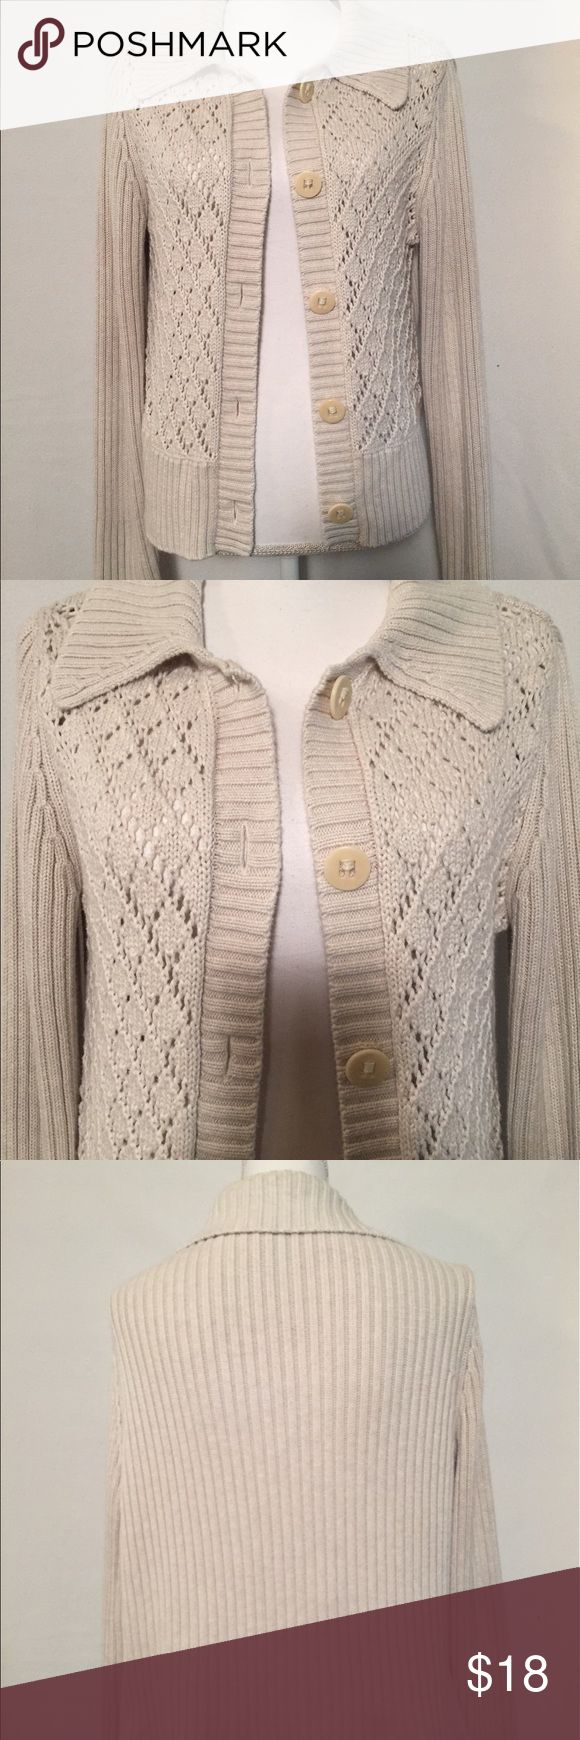 """Hanna Andersson Women's Cardigan, Size small 100% cotton Women's Cardigan. Pretty knit detail on front. Cream color. Bust measures 40"""". Length measures 21"""". No rips, tears, stains, or holes. 😀 Hanna Andersson Sweaters Cardigans"""